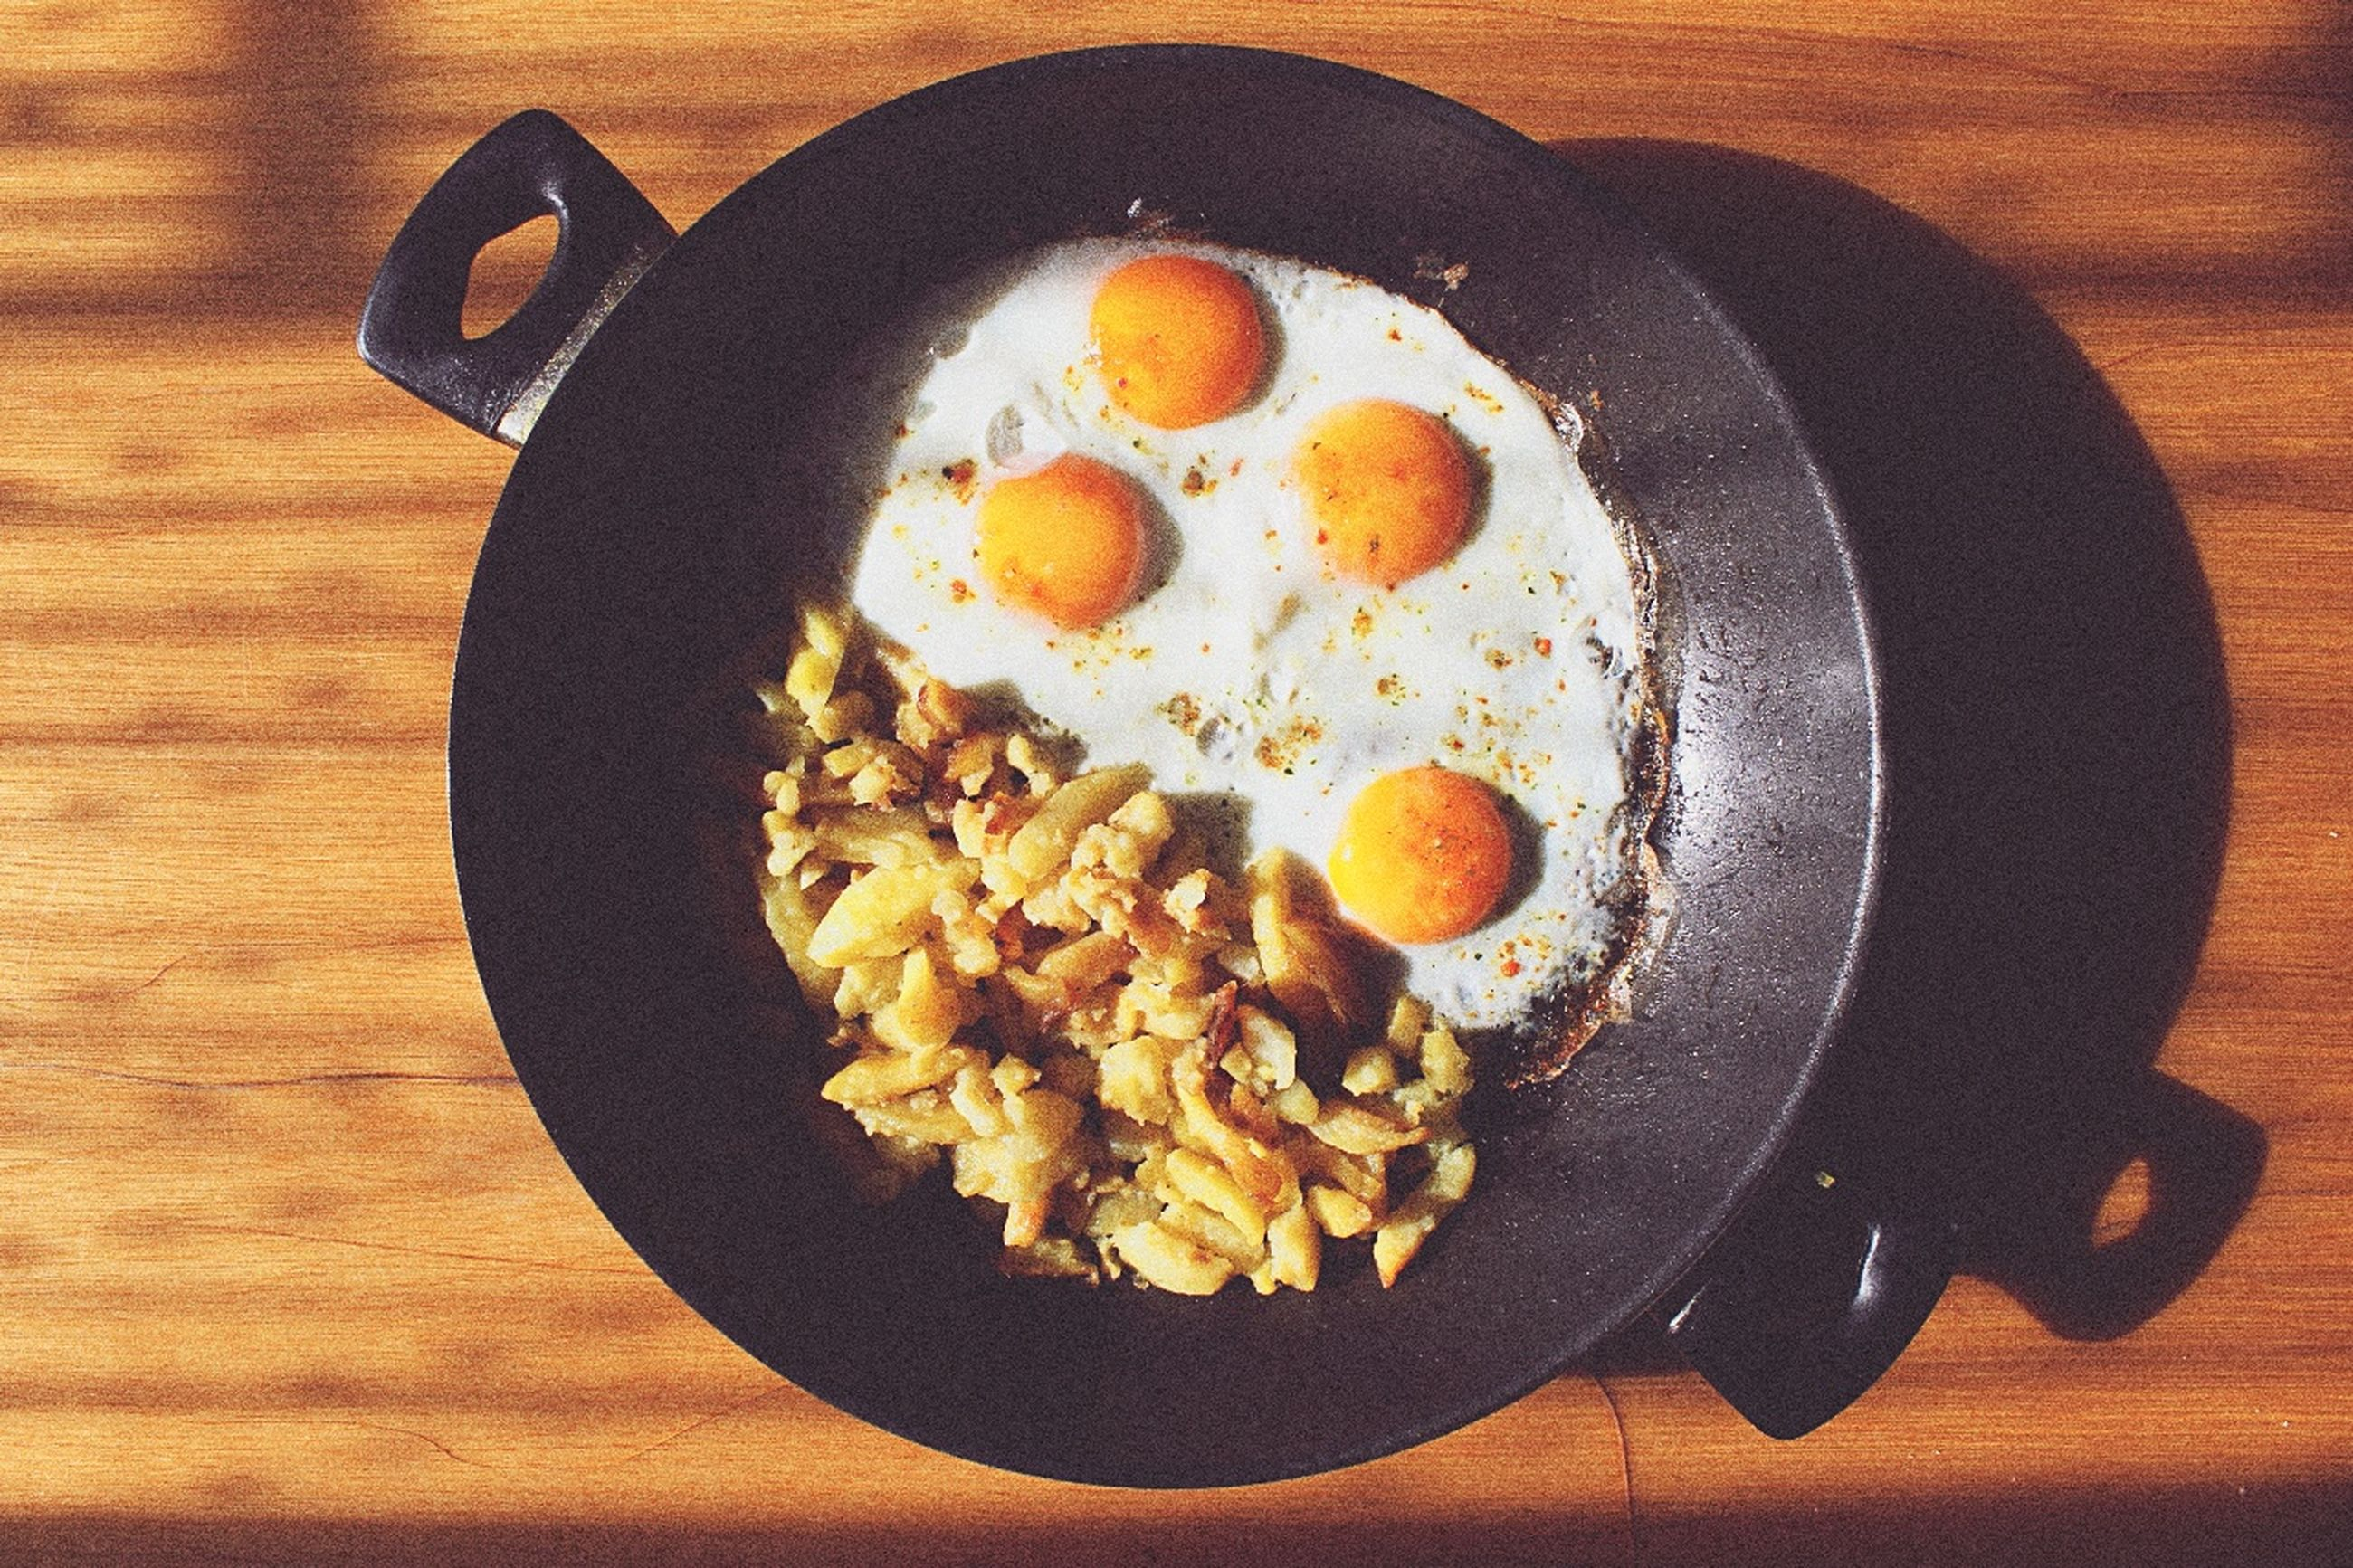 egg, breakfast, egg yolk, fried egg, indoors, healthy eating, freshness, egg white, food, ready-to-eat, sunny side up, no people, table, day